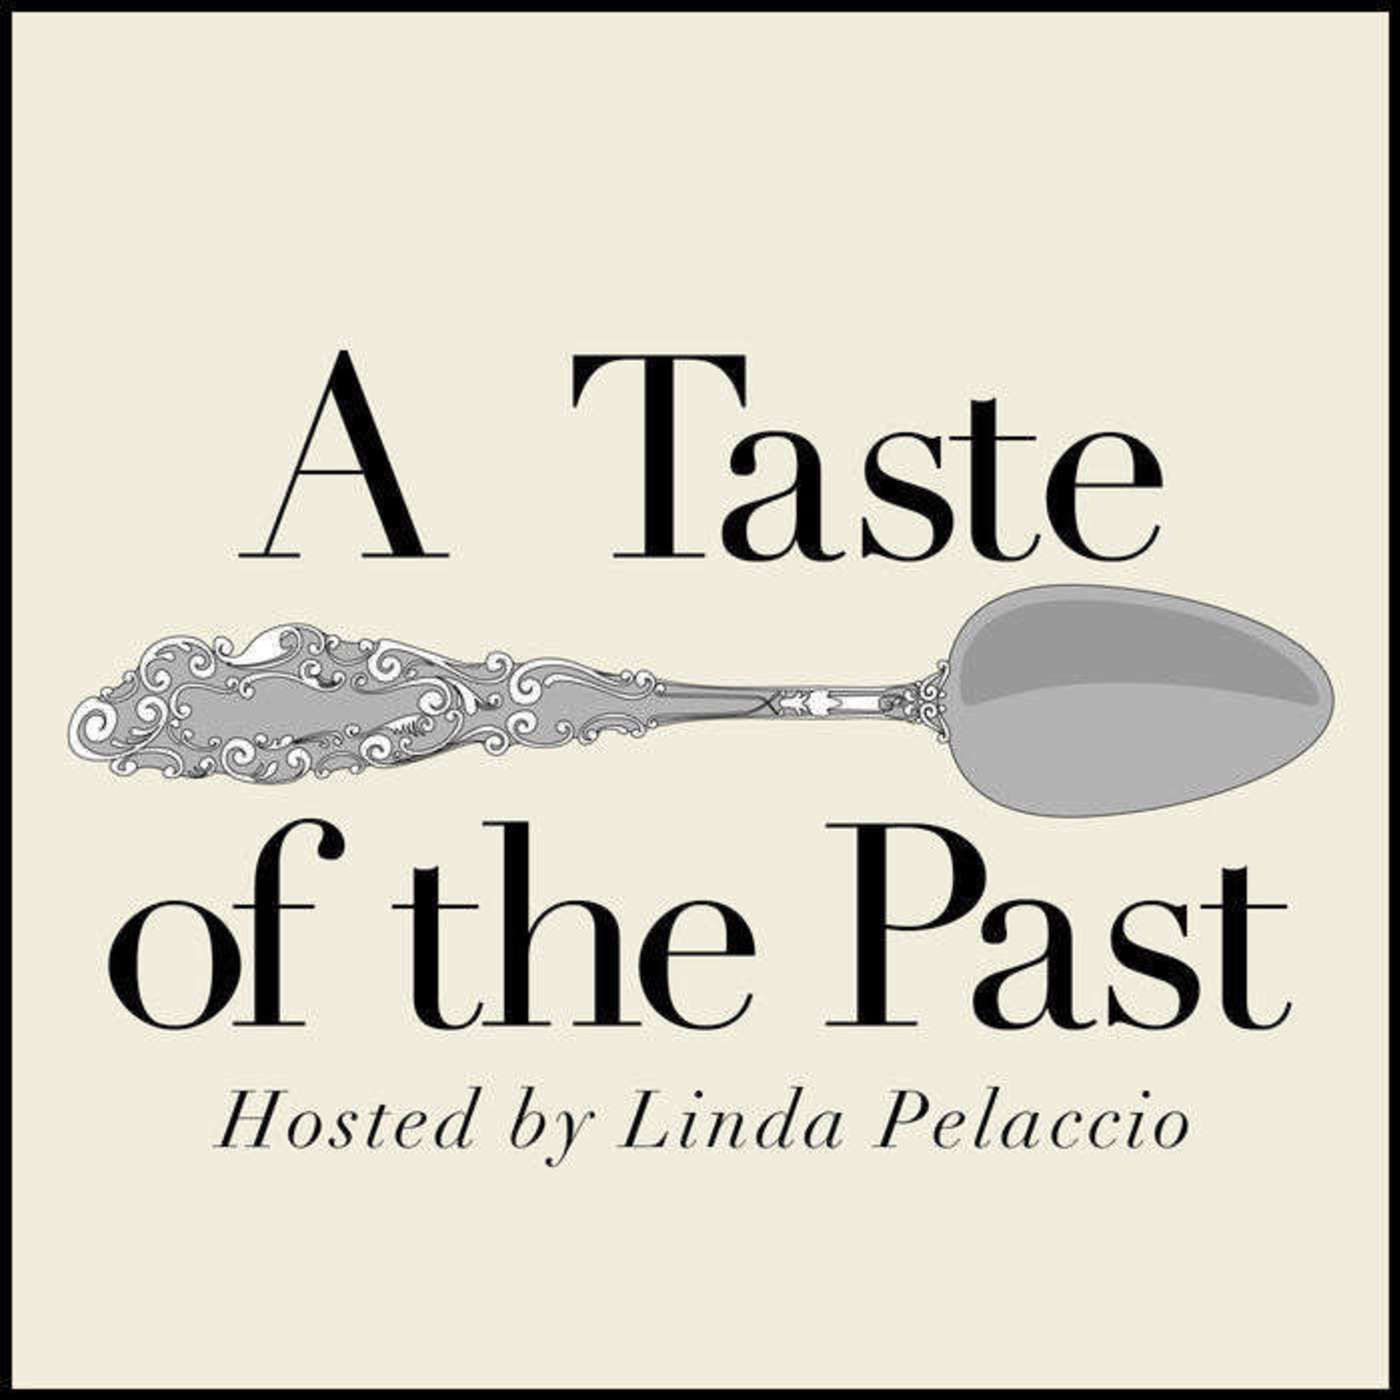 Episode 95: William Rubel and a History of Bread